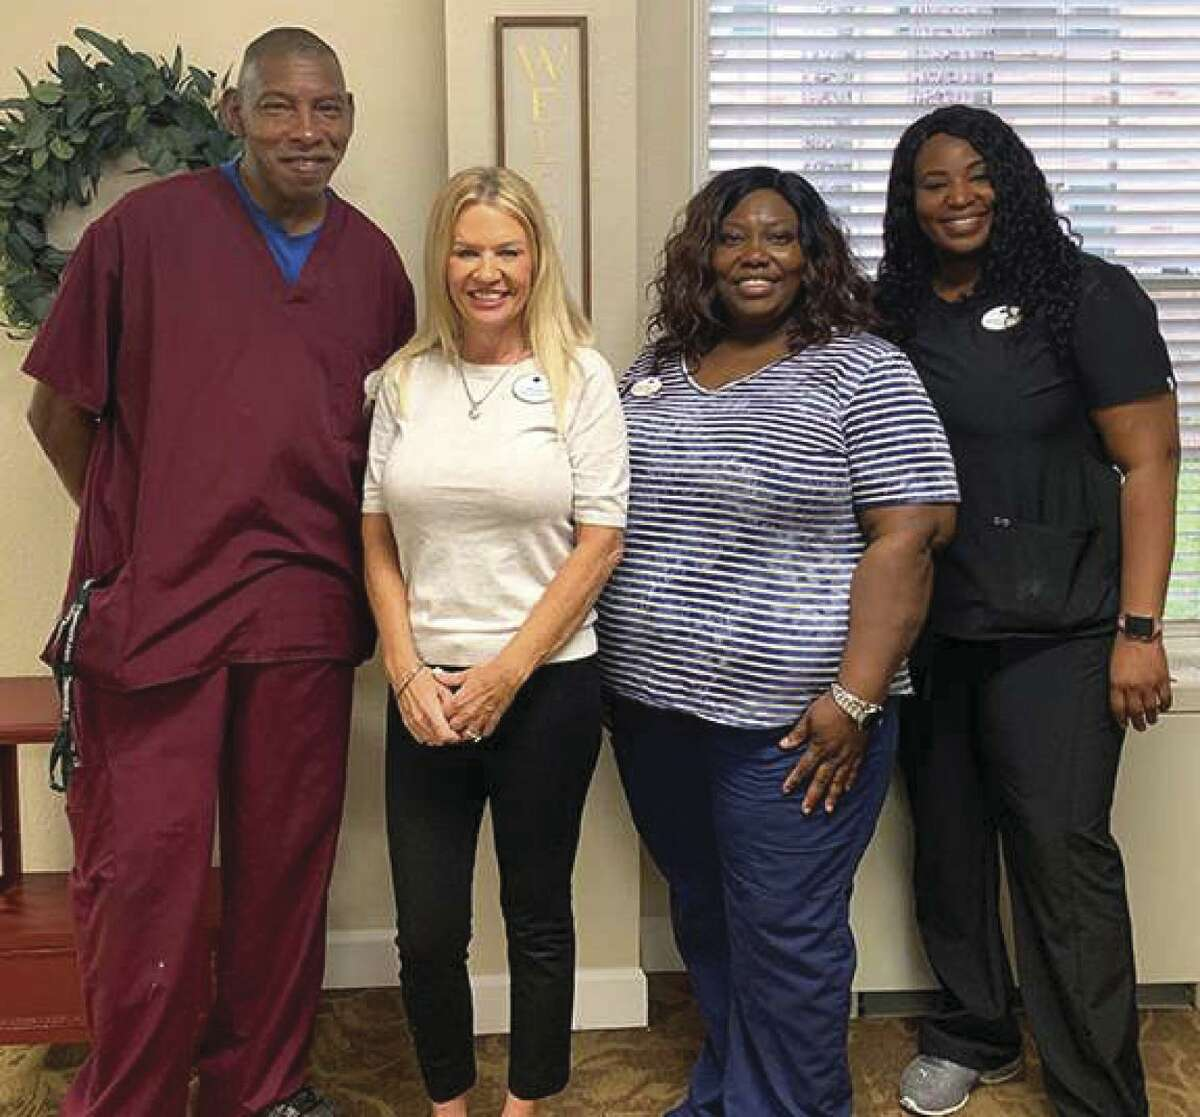 It takes an entire nursing team to provide top quality care. Here are but four of the key Treemont staff who contributed to the successful annual Treemont survey: Medication Technician Steven Gardner, Admnistrator Cynthia Lamison, DON Sheree Wade and ADON Simone Johnson.